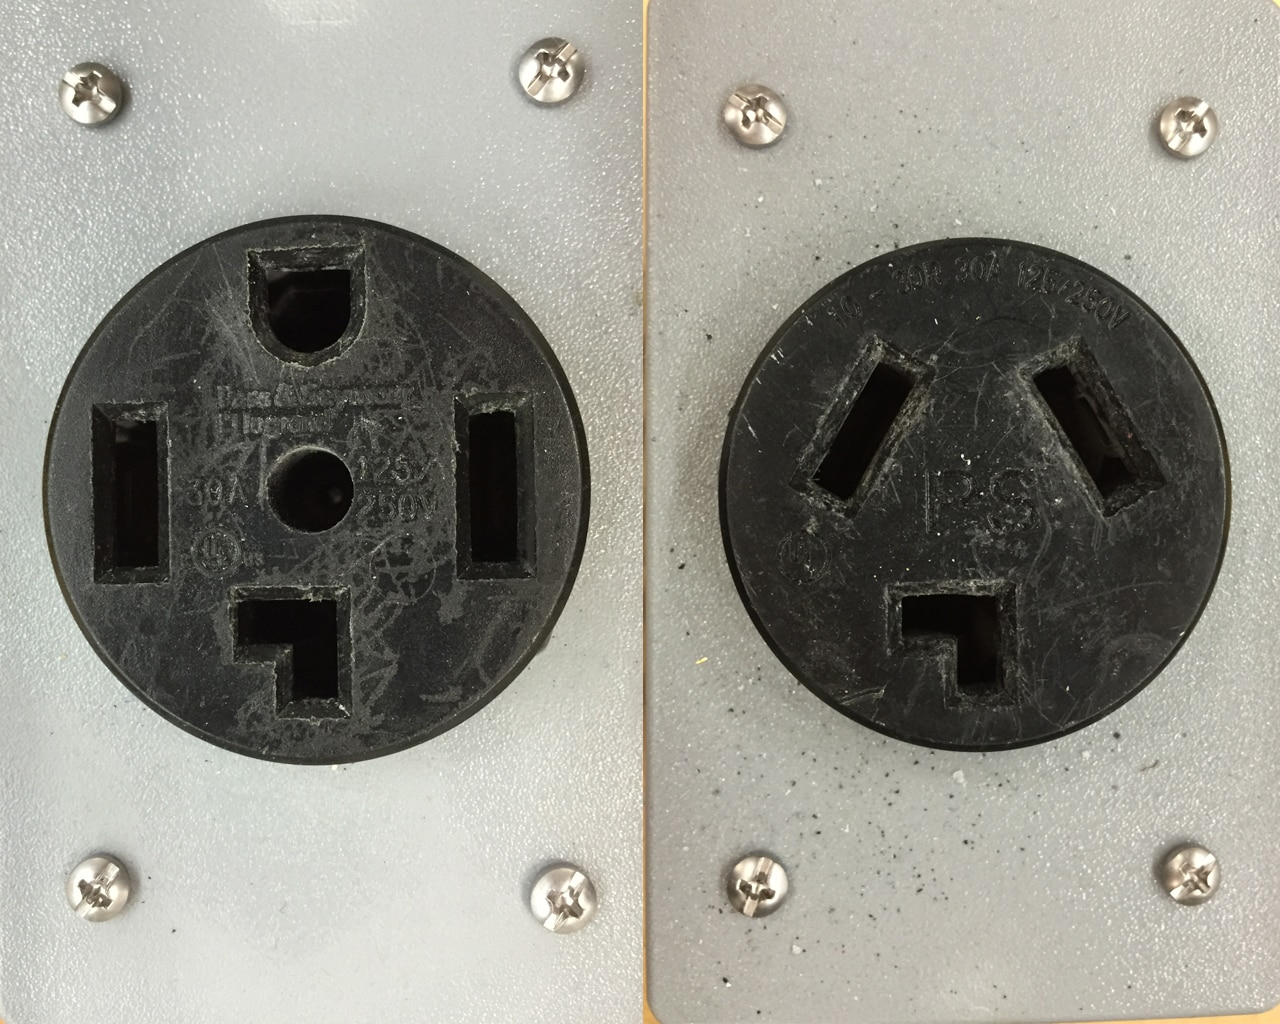 3 prong vs 4 prong dryer outlets whats the difference freds